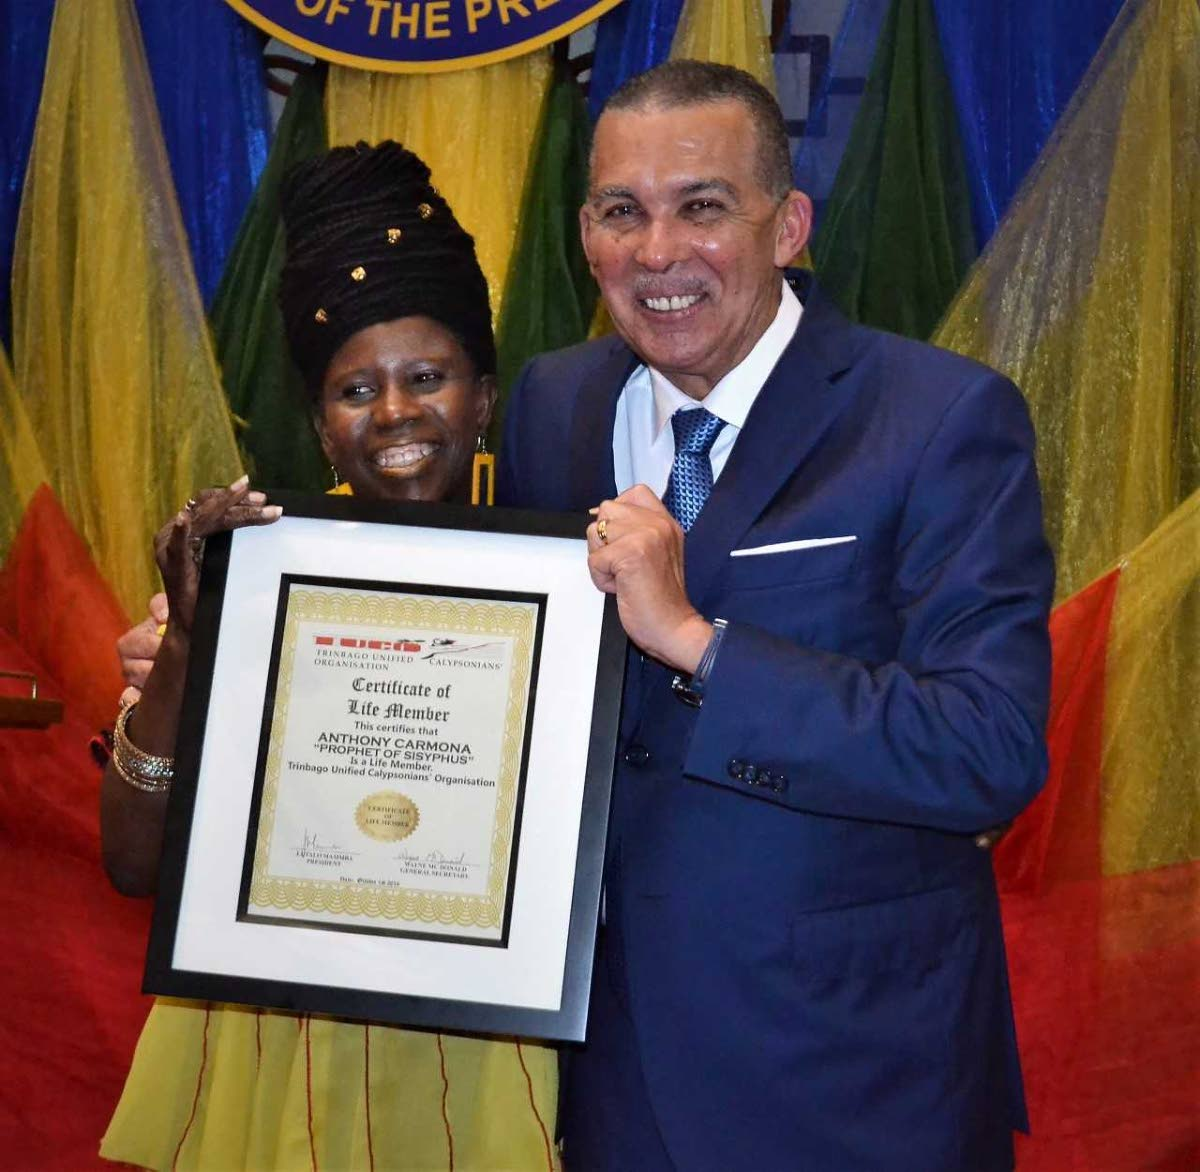 President Anthony Carmona receives the Certificate of Life Membership from Twiggy.